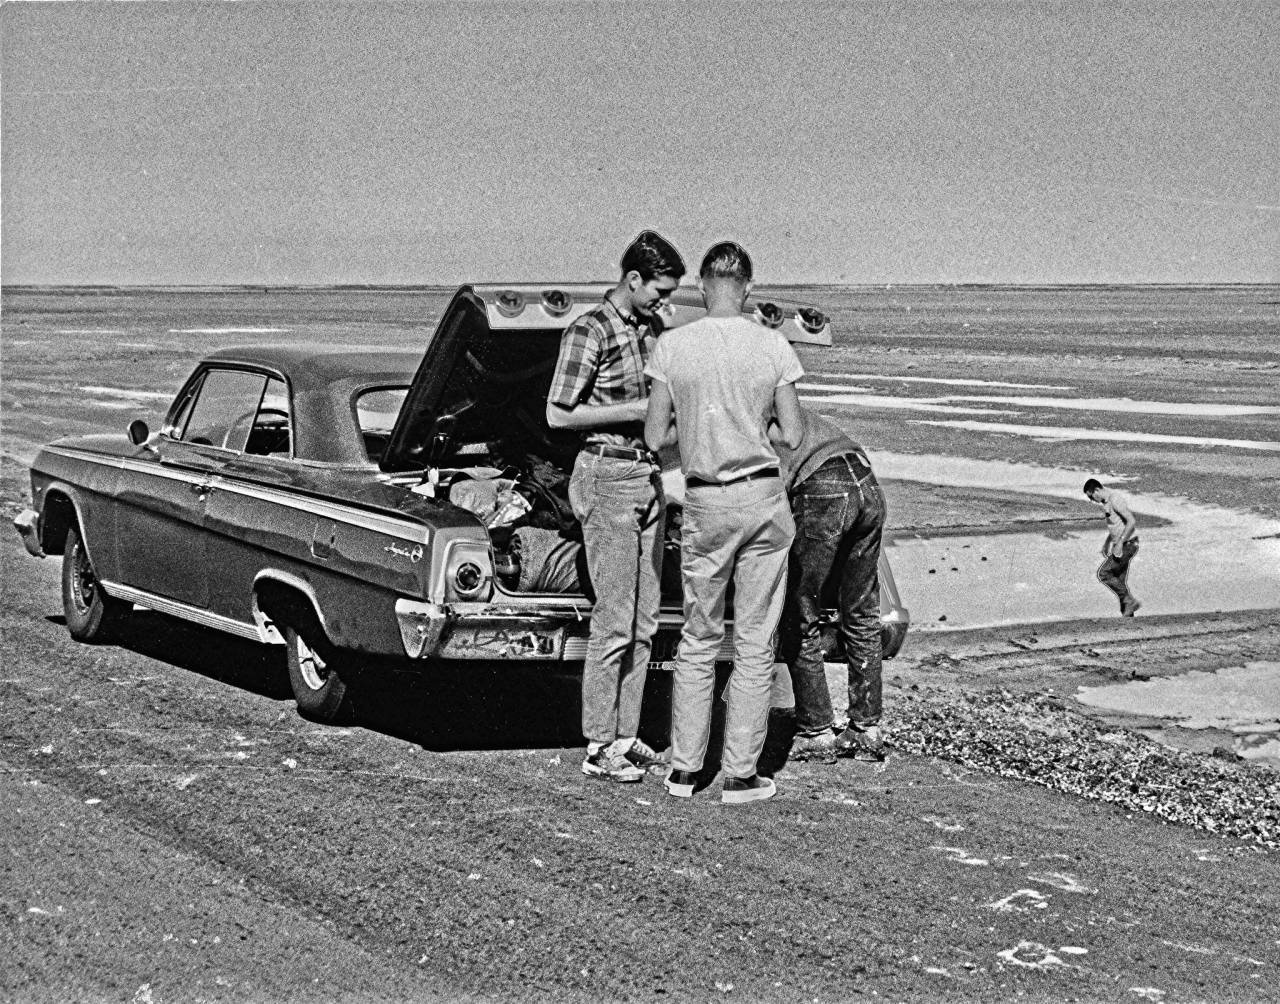 Road Trip to San Felipe, Baja, in 1966 On Spring Break in 1966 and I and 4 college buds took a road trip from Fresno down to San Felipe, Baja, in a 1962 Chevy Imapala. Here we are stopped on the highway out in the Baja desert on the last leg of our journey. Bob the Real Deal PRO 3y Lance - I find this photo very strange - the car is 4 yrs old and not hot rodded at all . I don't think your buddies were into cars like you , if it was yours , it would have a nice stance and cool mag wheels Greg Bishop PRO 3y What a change today. Invaded by bad guys and a city with growing pains and throngs of tourists. Would have been the perfect time to keep exactly as it was (except add digital cameras :). Lance Nix PRO 3y Bob the Real Deal You be right, Bob. They were a conservative bunch. Tom (down to the right), the car's owner, went on to become a CPA. Nick (back to picture) drove a stock 1964 Chevelle convertible (283 2-barrel with 2-speed auto trans) and became manager for one of those mega farms south of Lemoore. Syd (standing left) drove an old MGA which he never washed or waxed and went on to become a big wig with the IRS in San Jose. And Lee (butt view only) never had a car that I remember and I don't know what became of him. Not a gear head in the bunch.